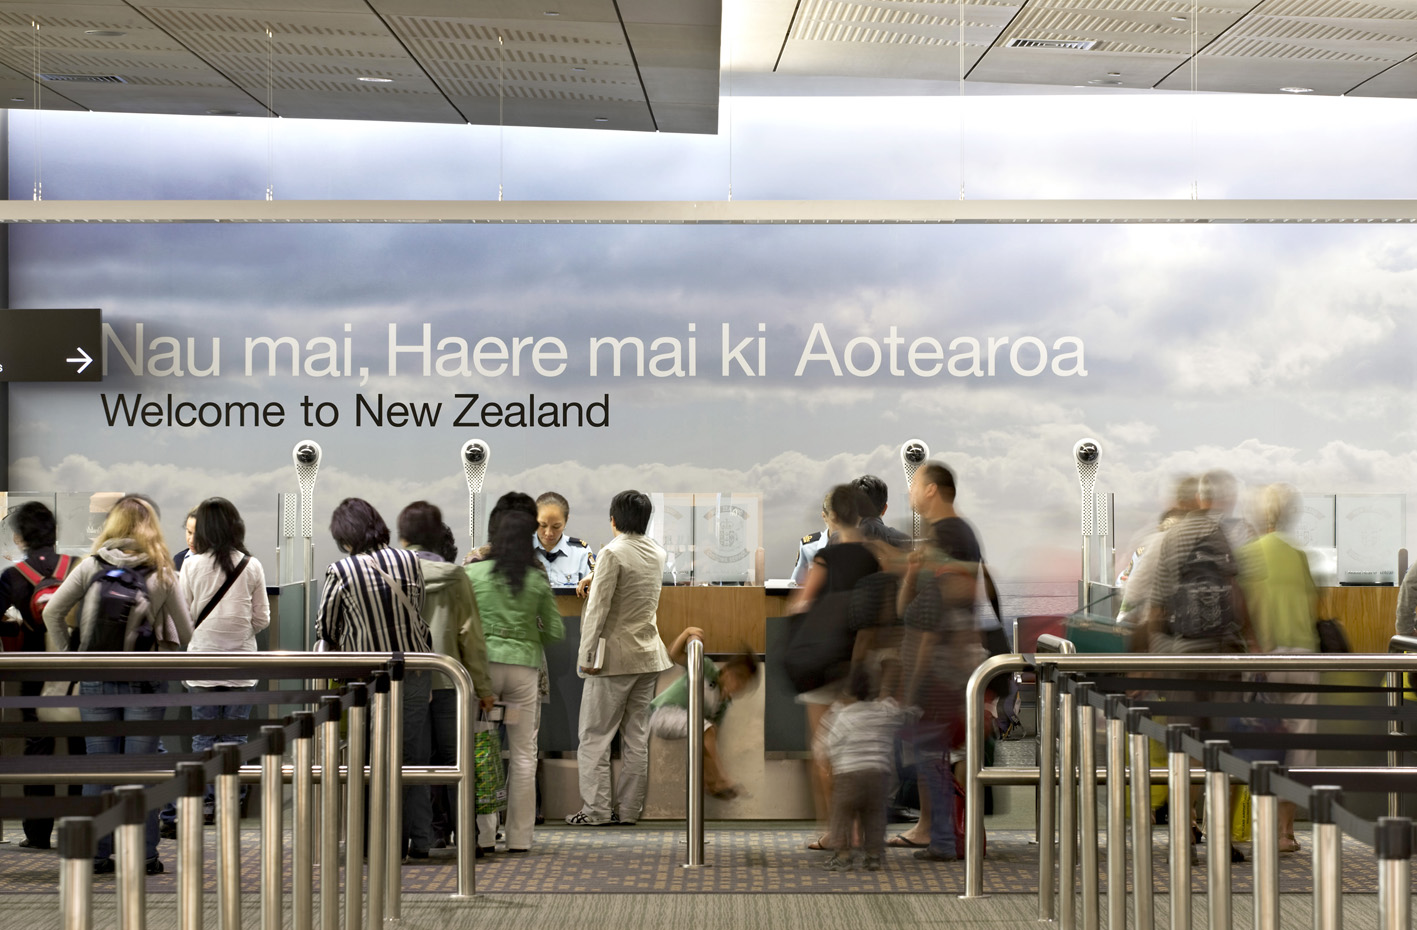 Auckland International Airport Arrivals Expansion   S&T combined extensive planning and detail-conscious design to create the new 3A Arrivals area for international travellers.